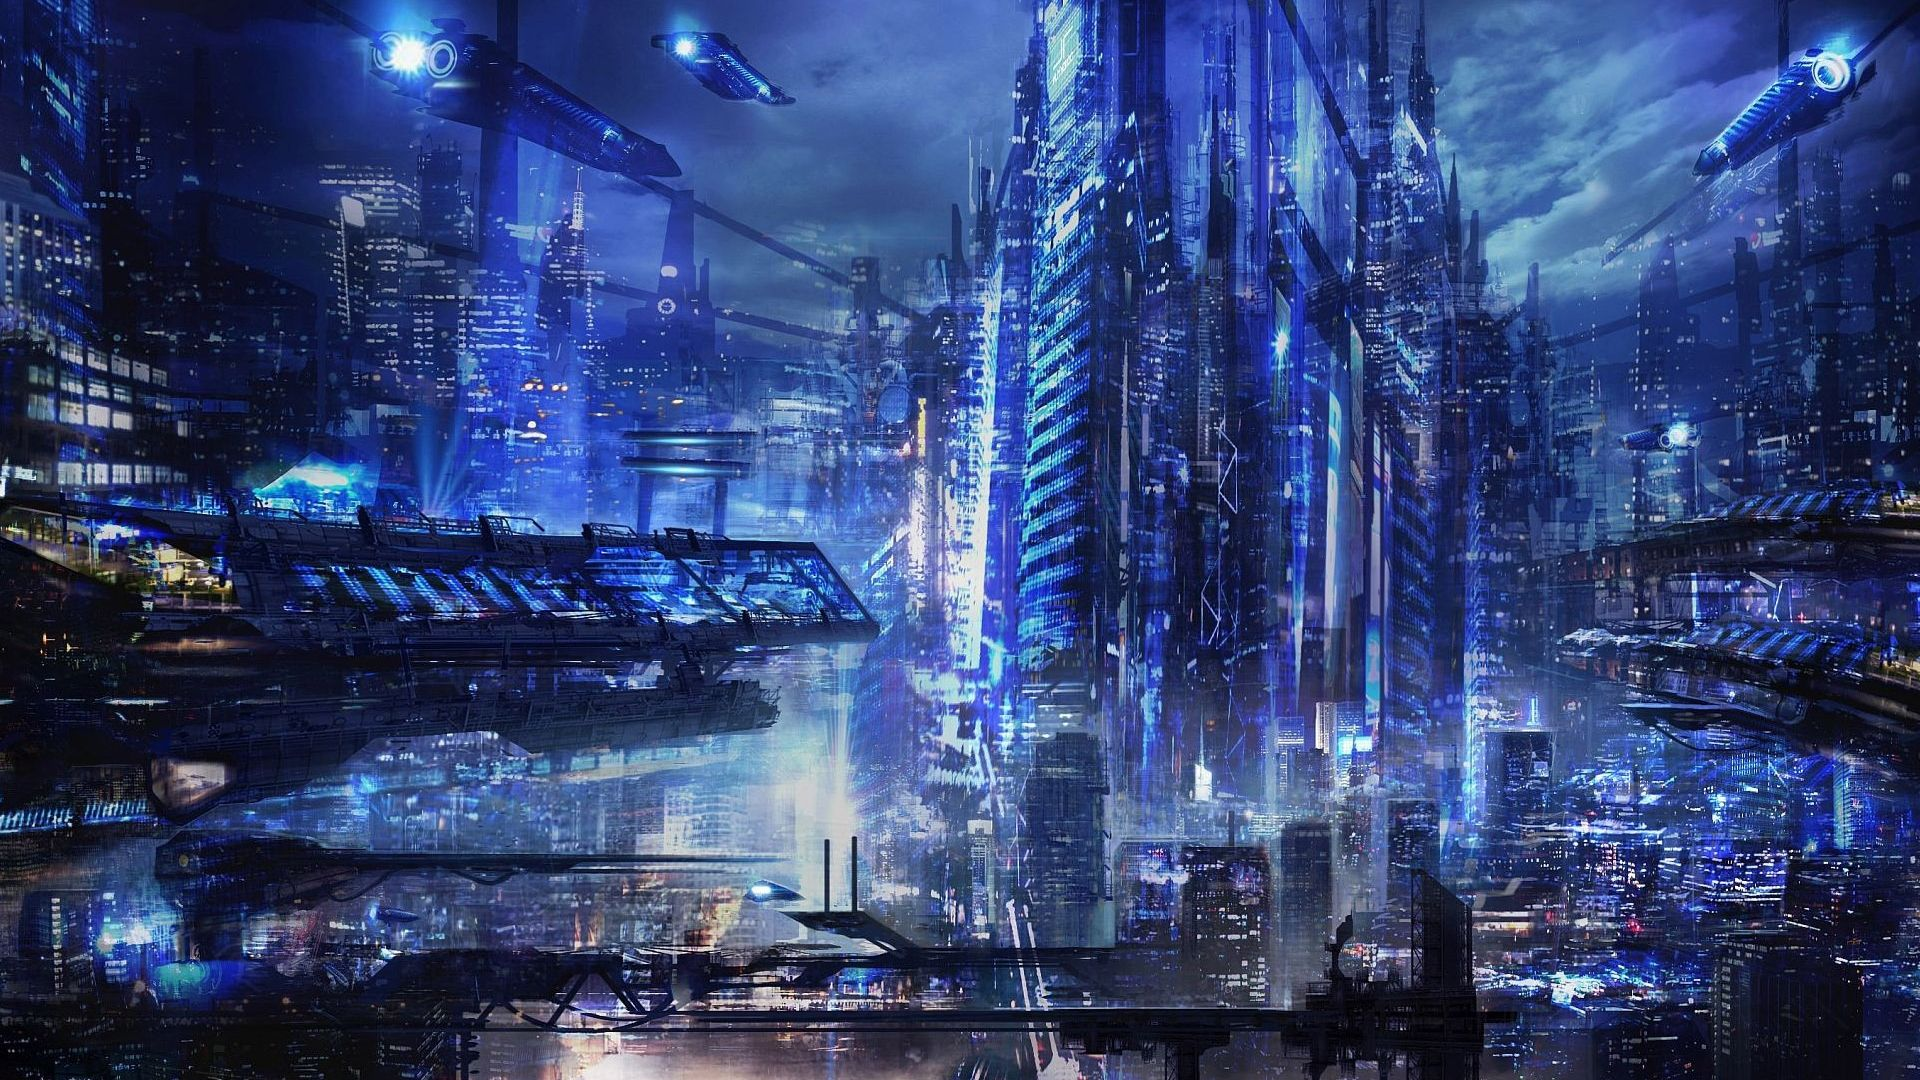 Cyberpunk Wallpapers 1920x1080 Cyberpunk City Sci Fi City City Wallpaper